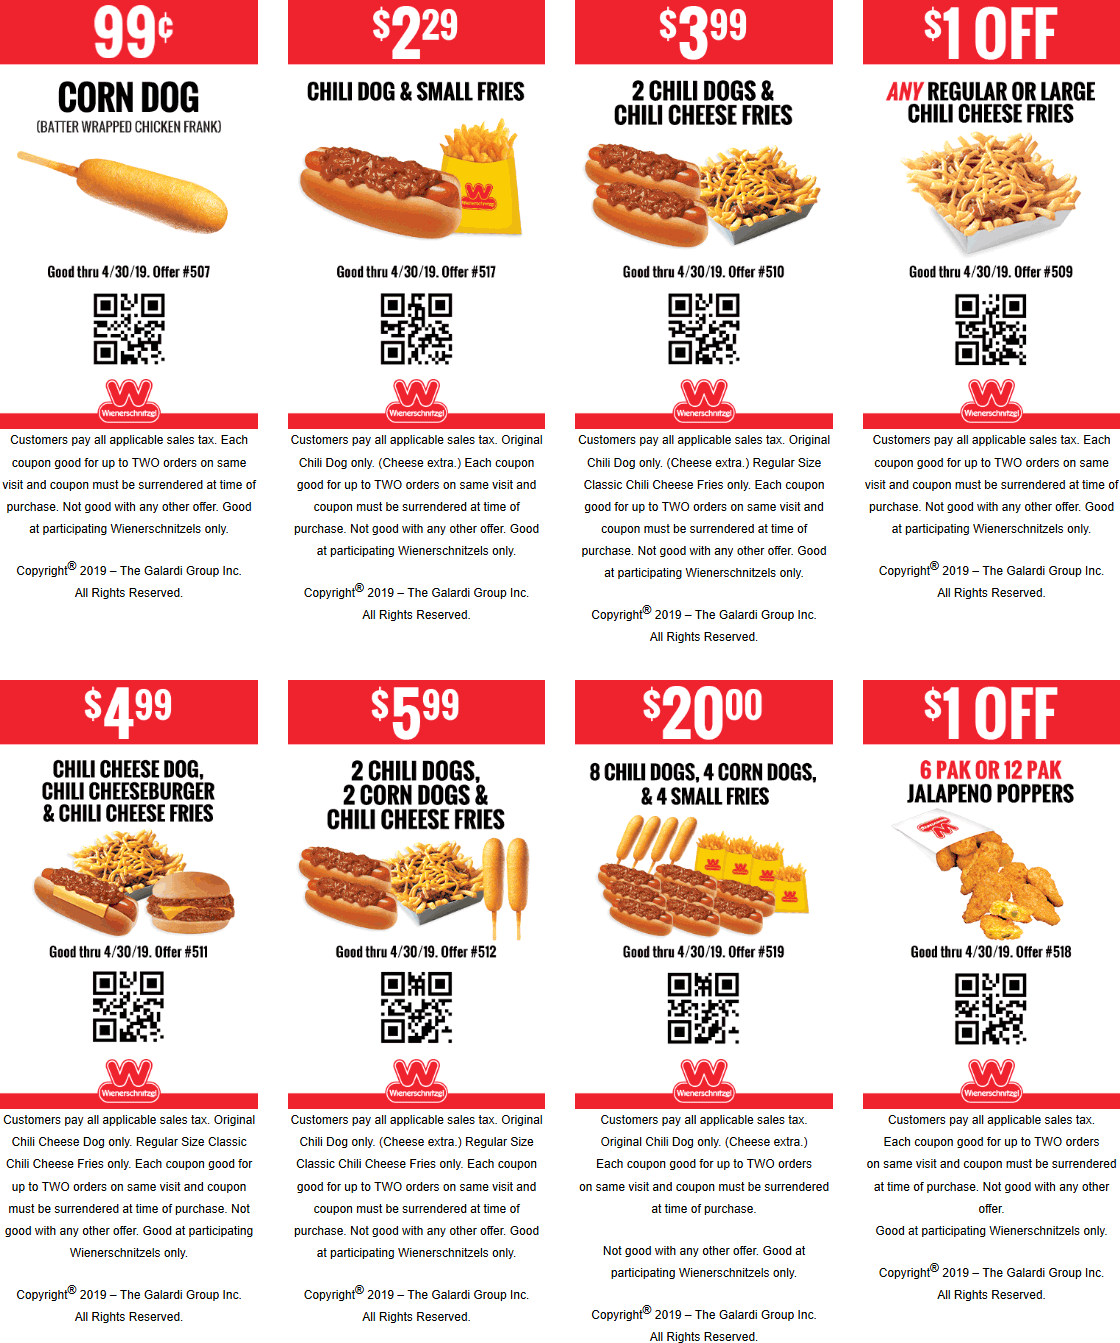 Wienerschnitzel coupons & promo code for [April 2021]